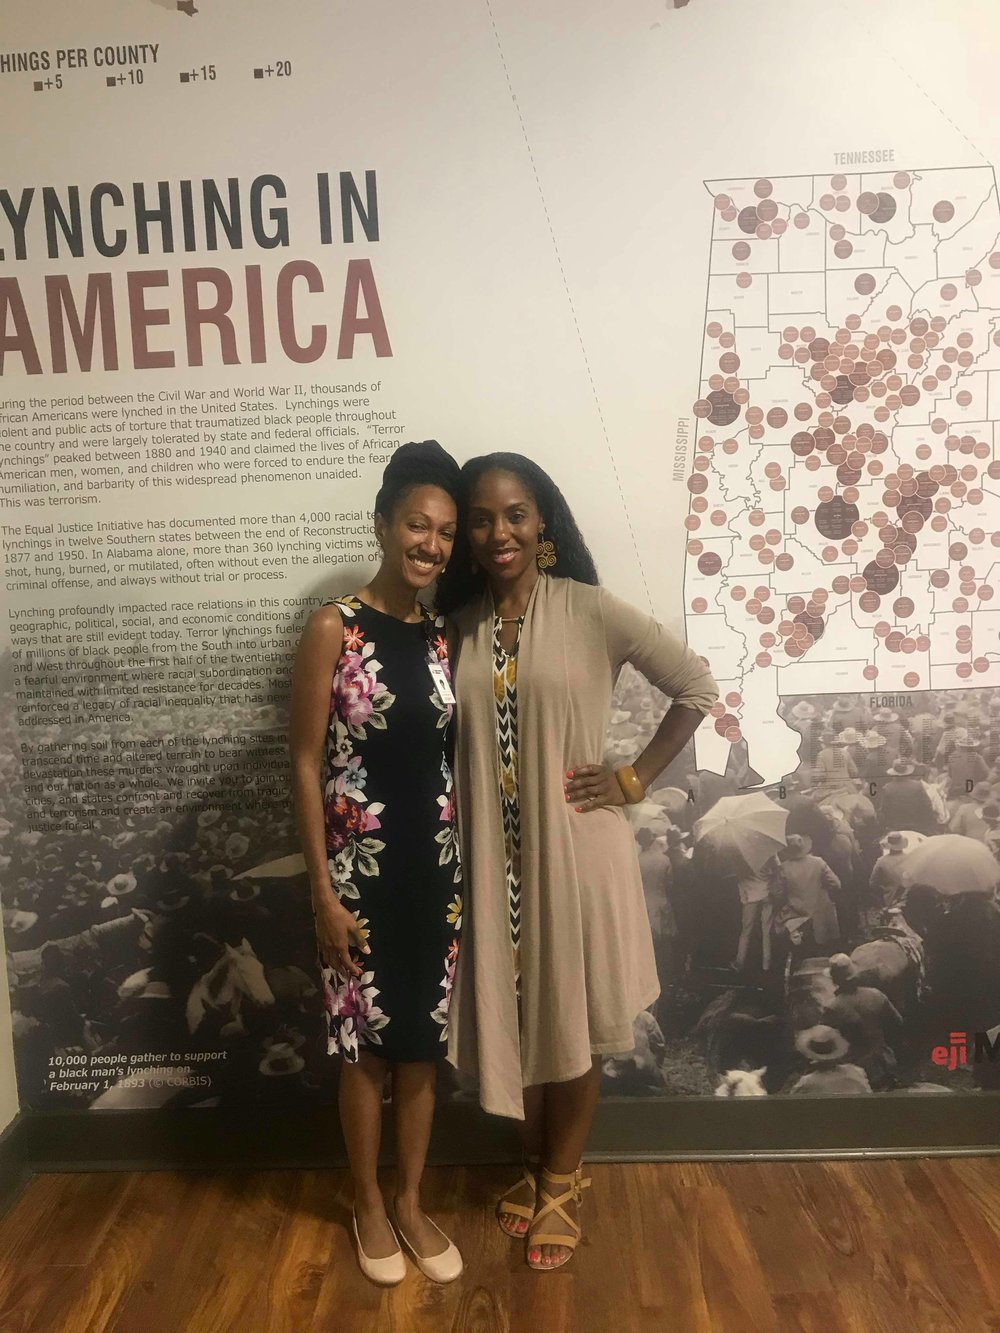 Ms. Gabrielle Daniels - A special thank you to Ms. Gabrielle Daniels (Racial Justice Fellow with the Equal Justice Initiative) for greeting No More Martyrs and participating in a video interview. She is pictured here with No More Martyrs Founder, Dr. Nadia Richardson.